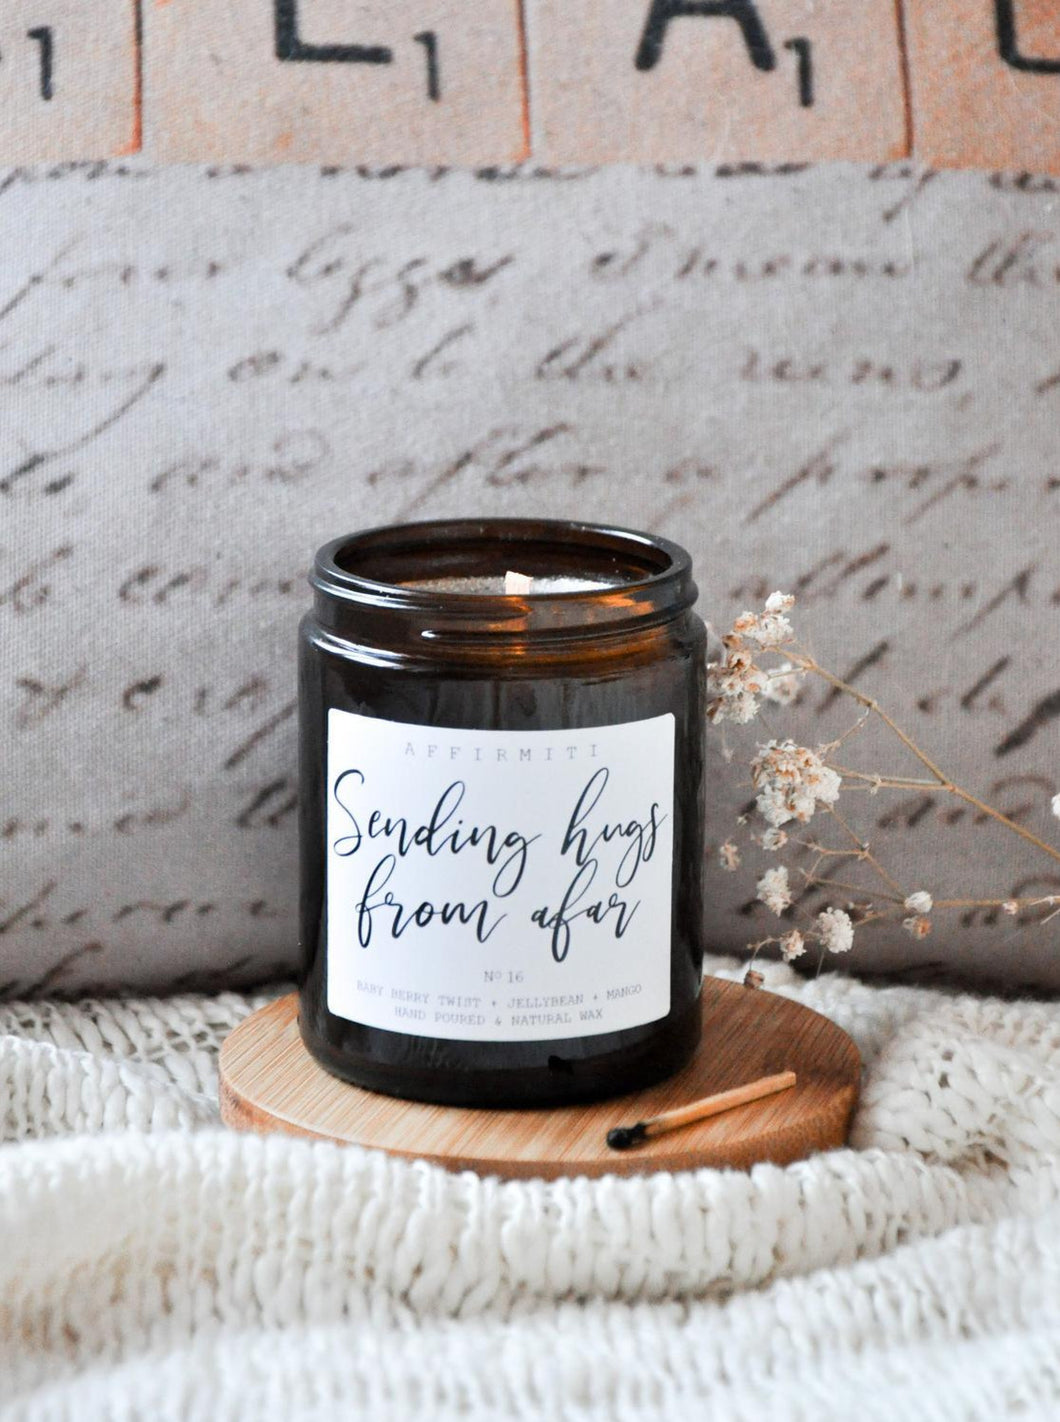 Sending Hugs From Afar Premium Wood Wick Candle